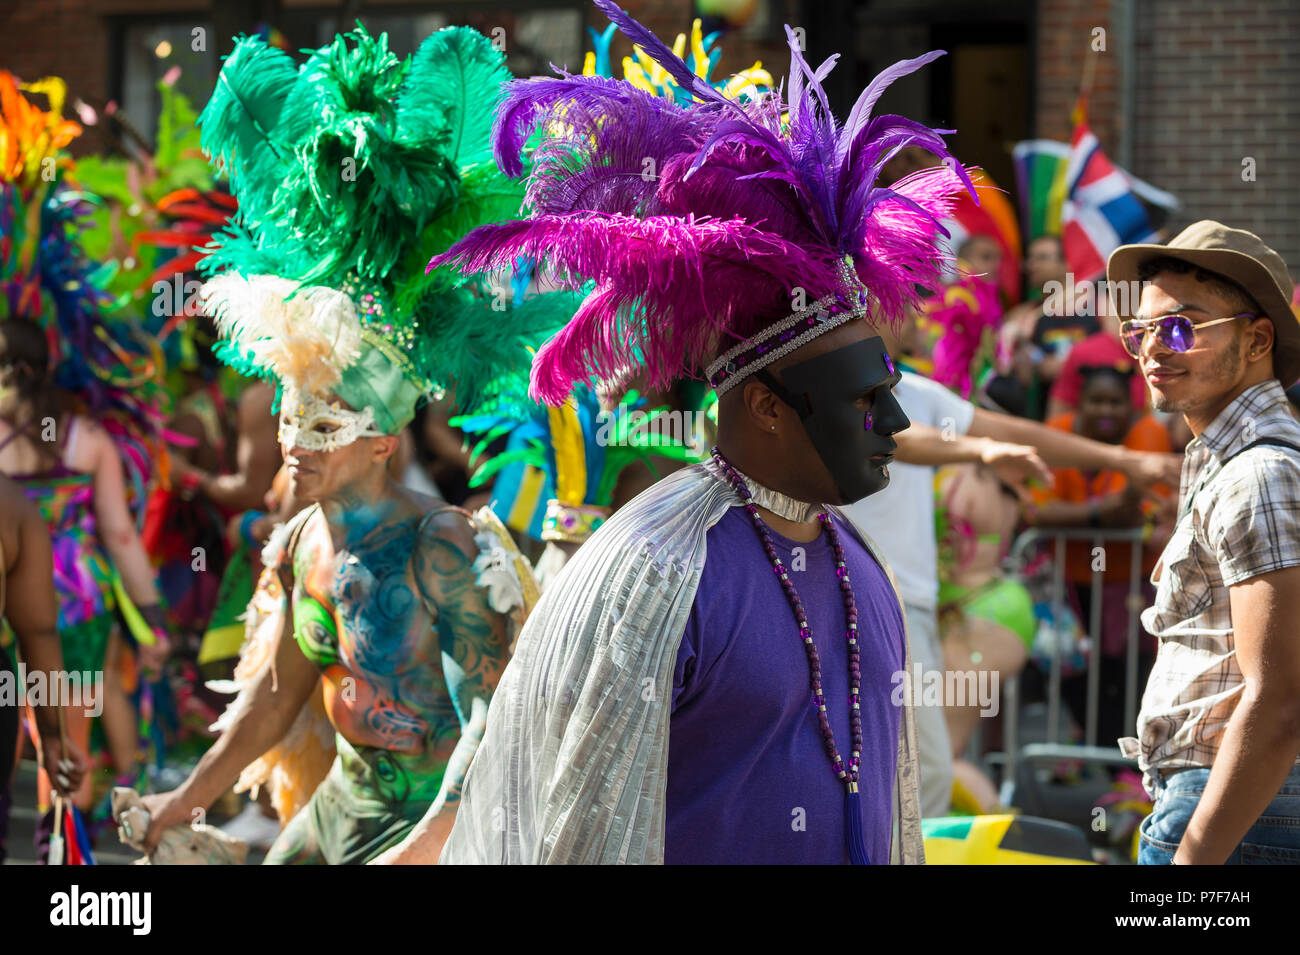 NEW YORK CITY - JUNE 25, 2017: Participants dressed in flamboyant feathery carnival costumes in the annual Pride Parade as it passes through Greenwich - Stock Image